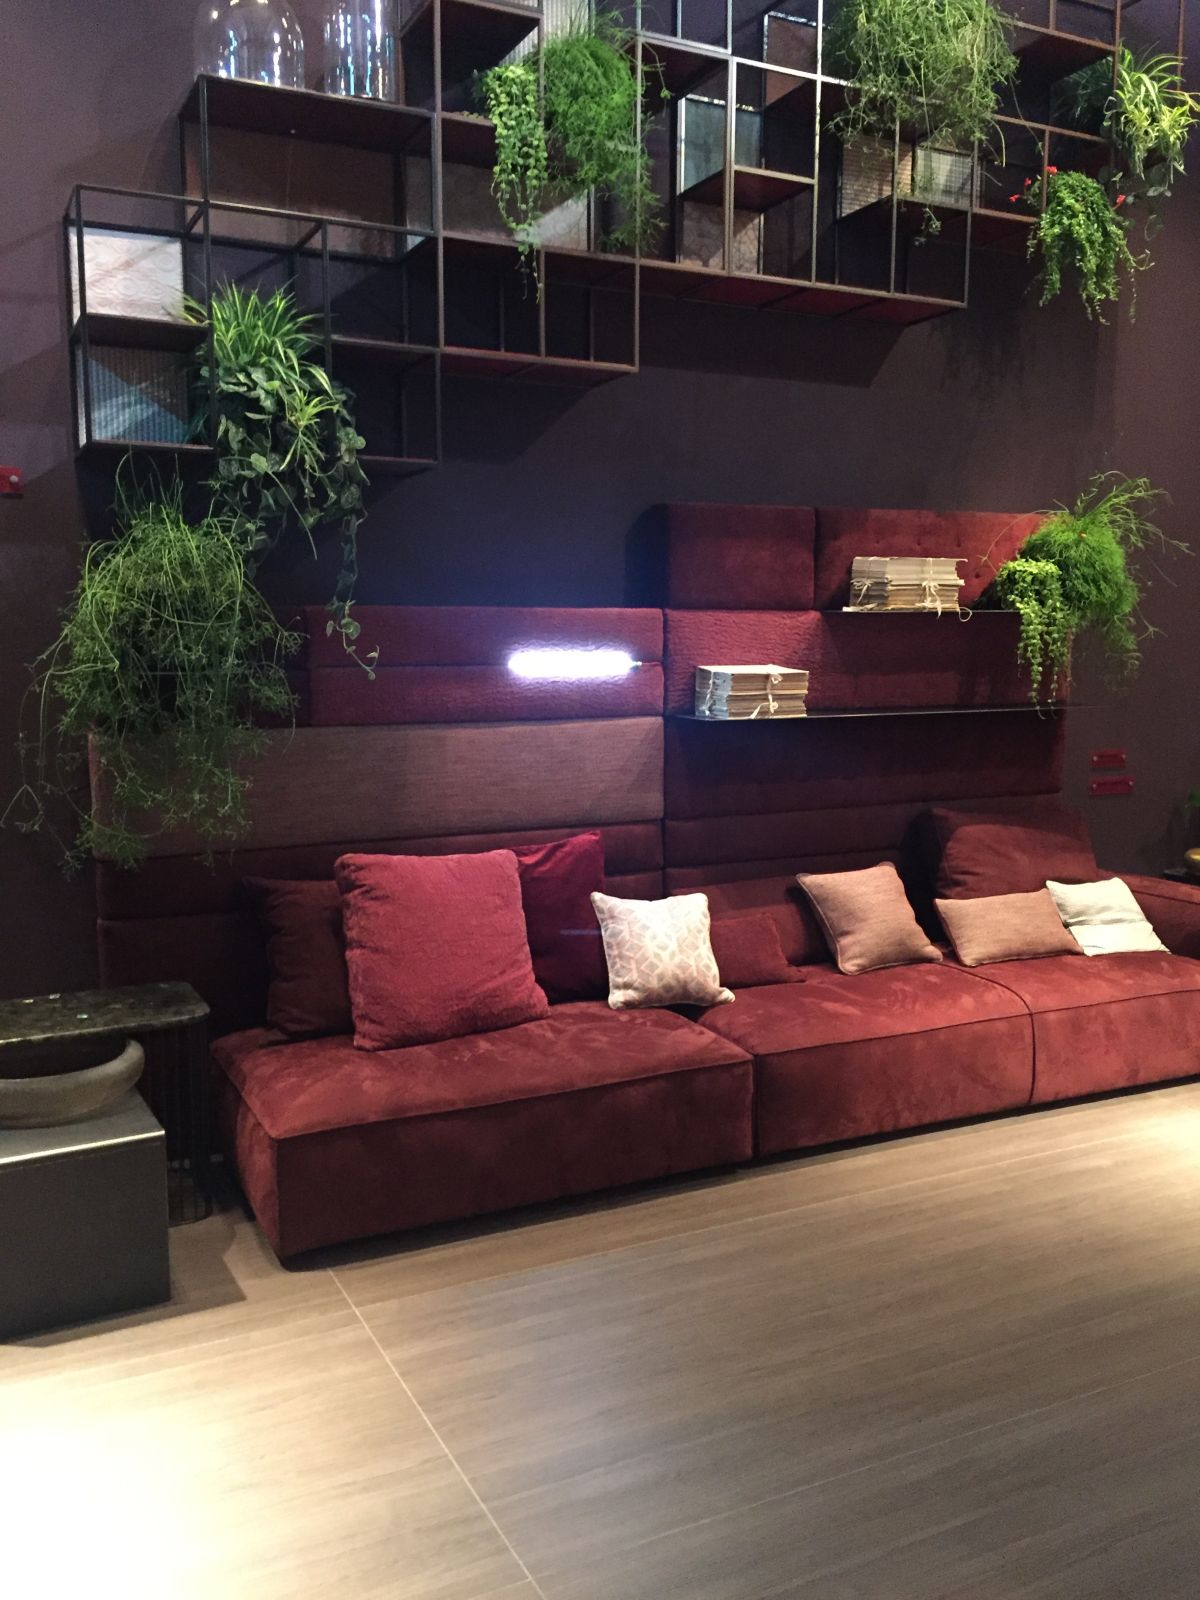 Wire shelves and decorated with plants above the sofa